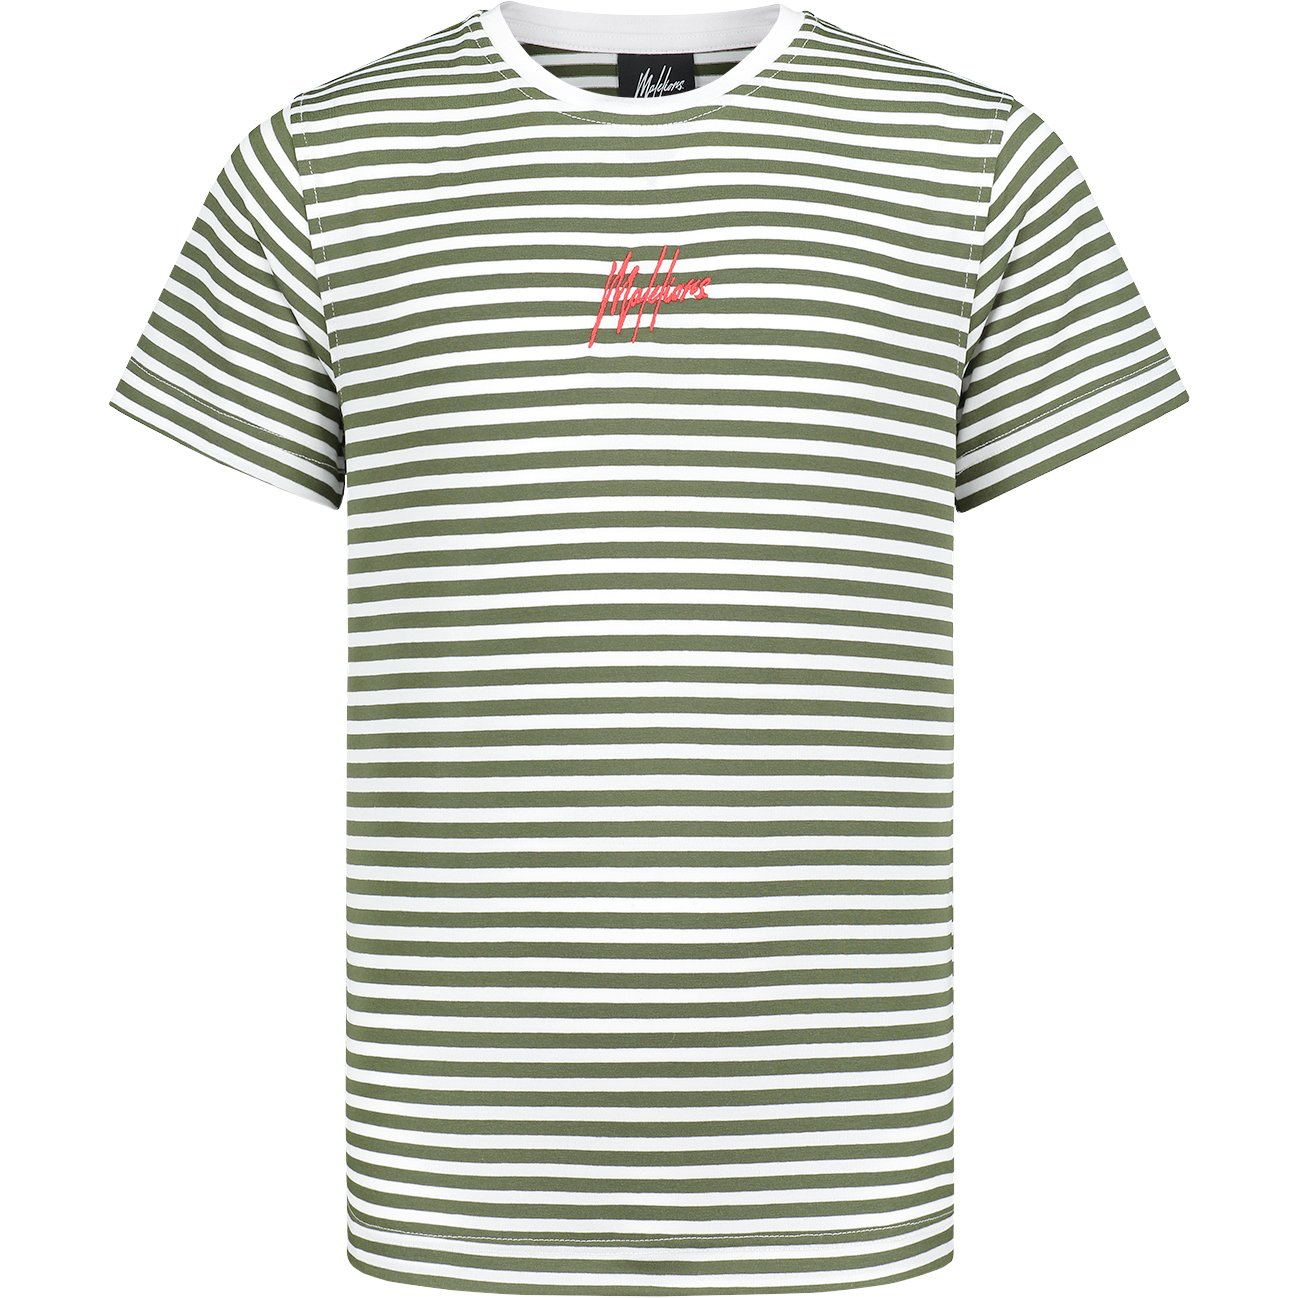 Malelions Shirt Striped Groen